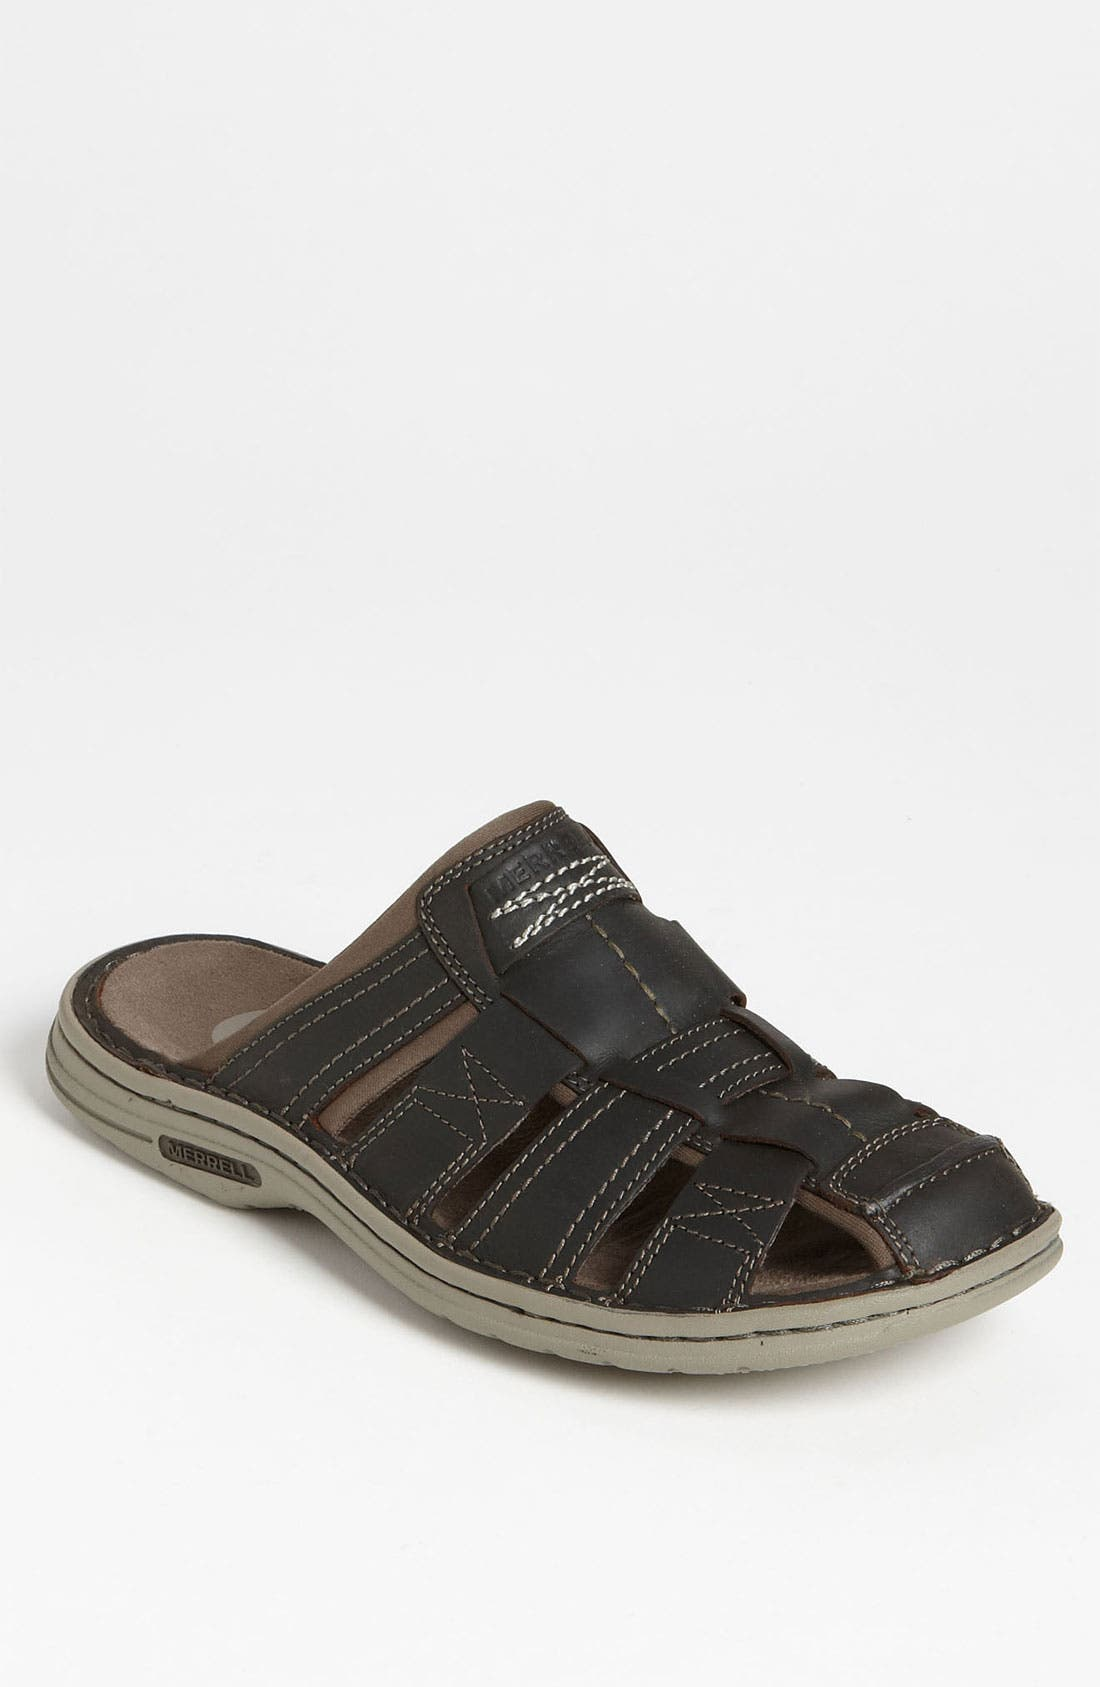 Alternate Image 1 Selected - Merrell 'World Reaction' Sandal (Men)